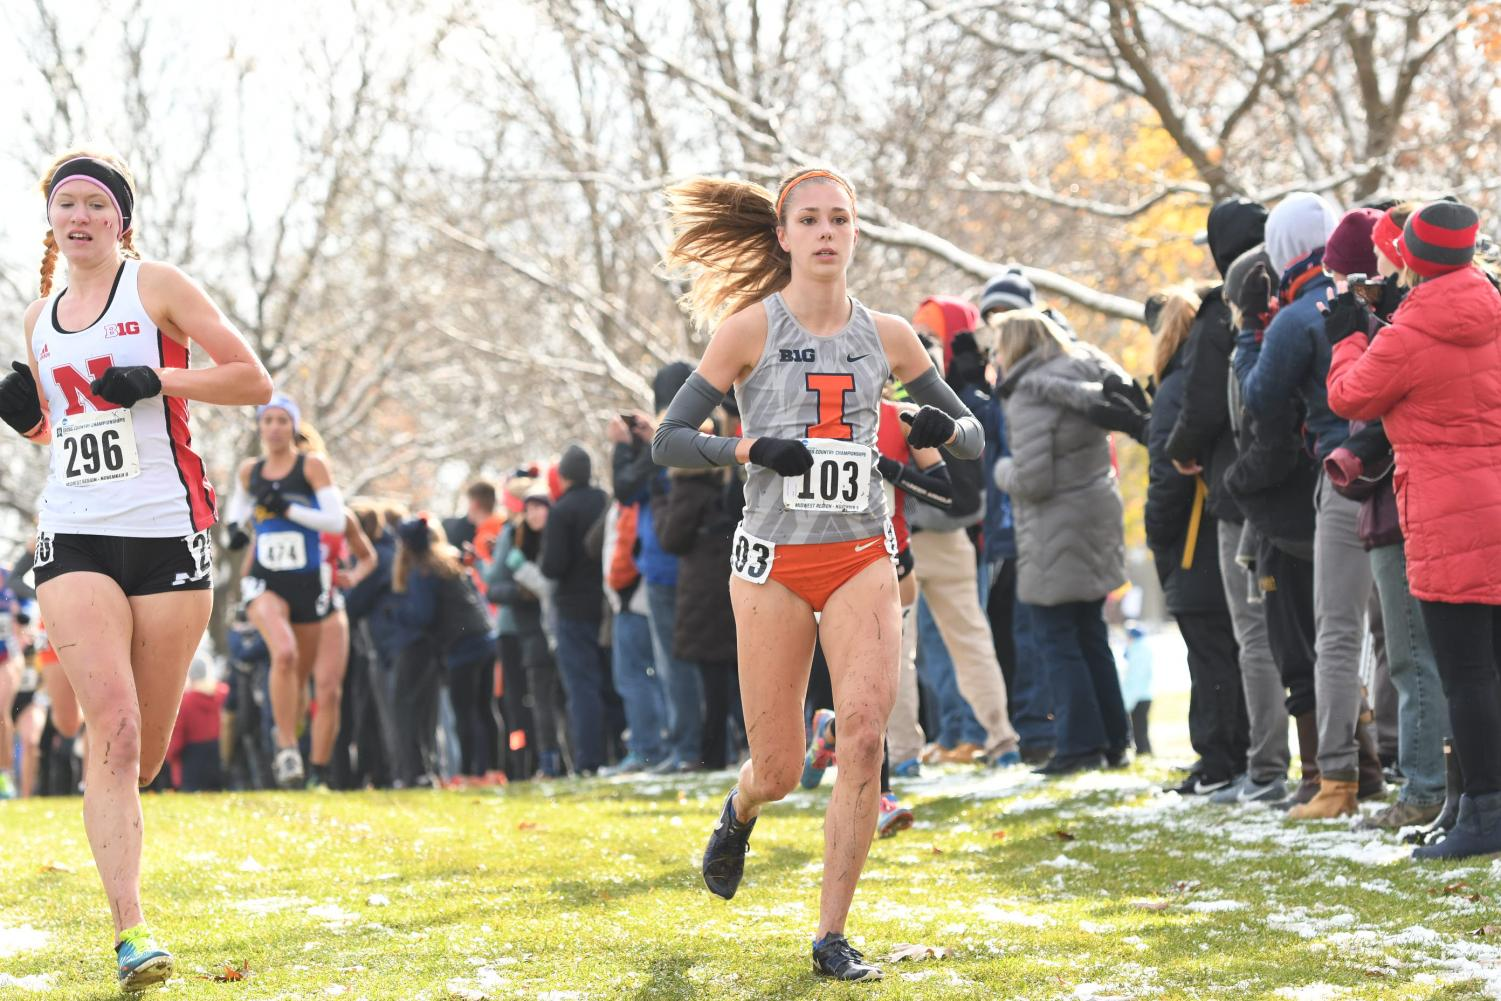 Sophomore Allison McGrath runs at the Midwest Regional on Nov. 9. McGrath topped the Illini with a 18th-place finish overall and a personal best in the 6K.